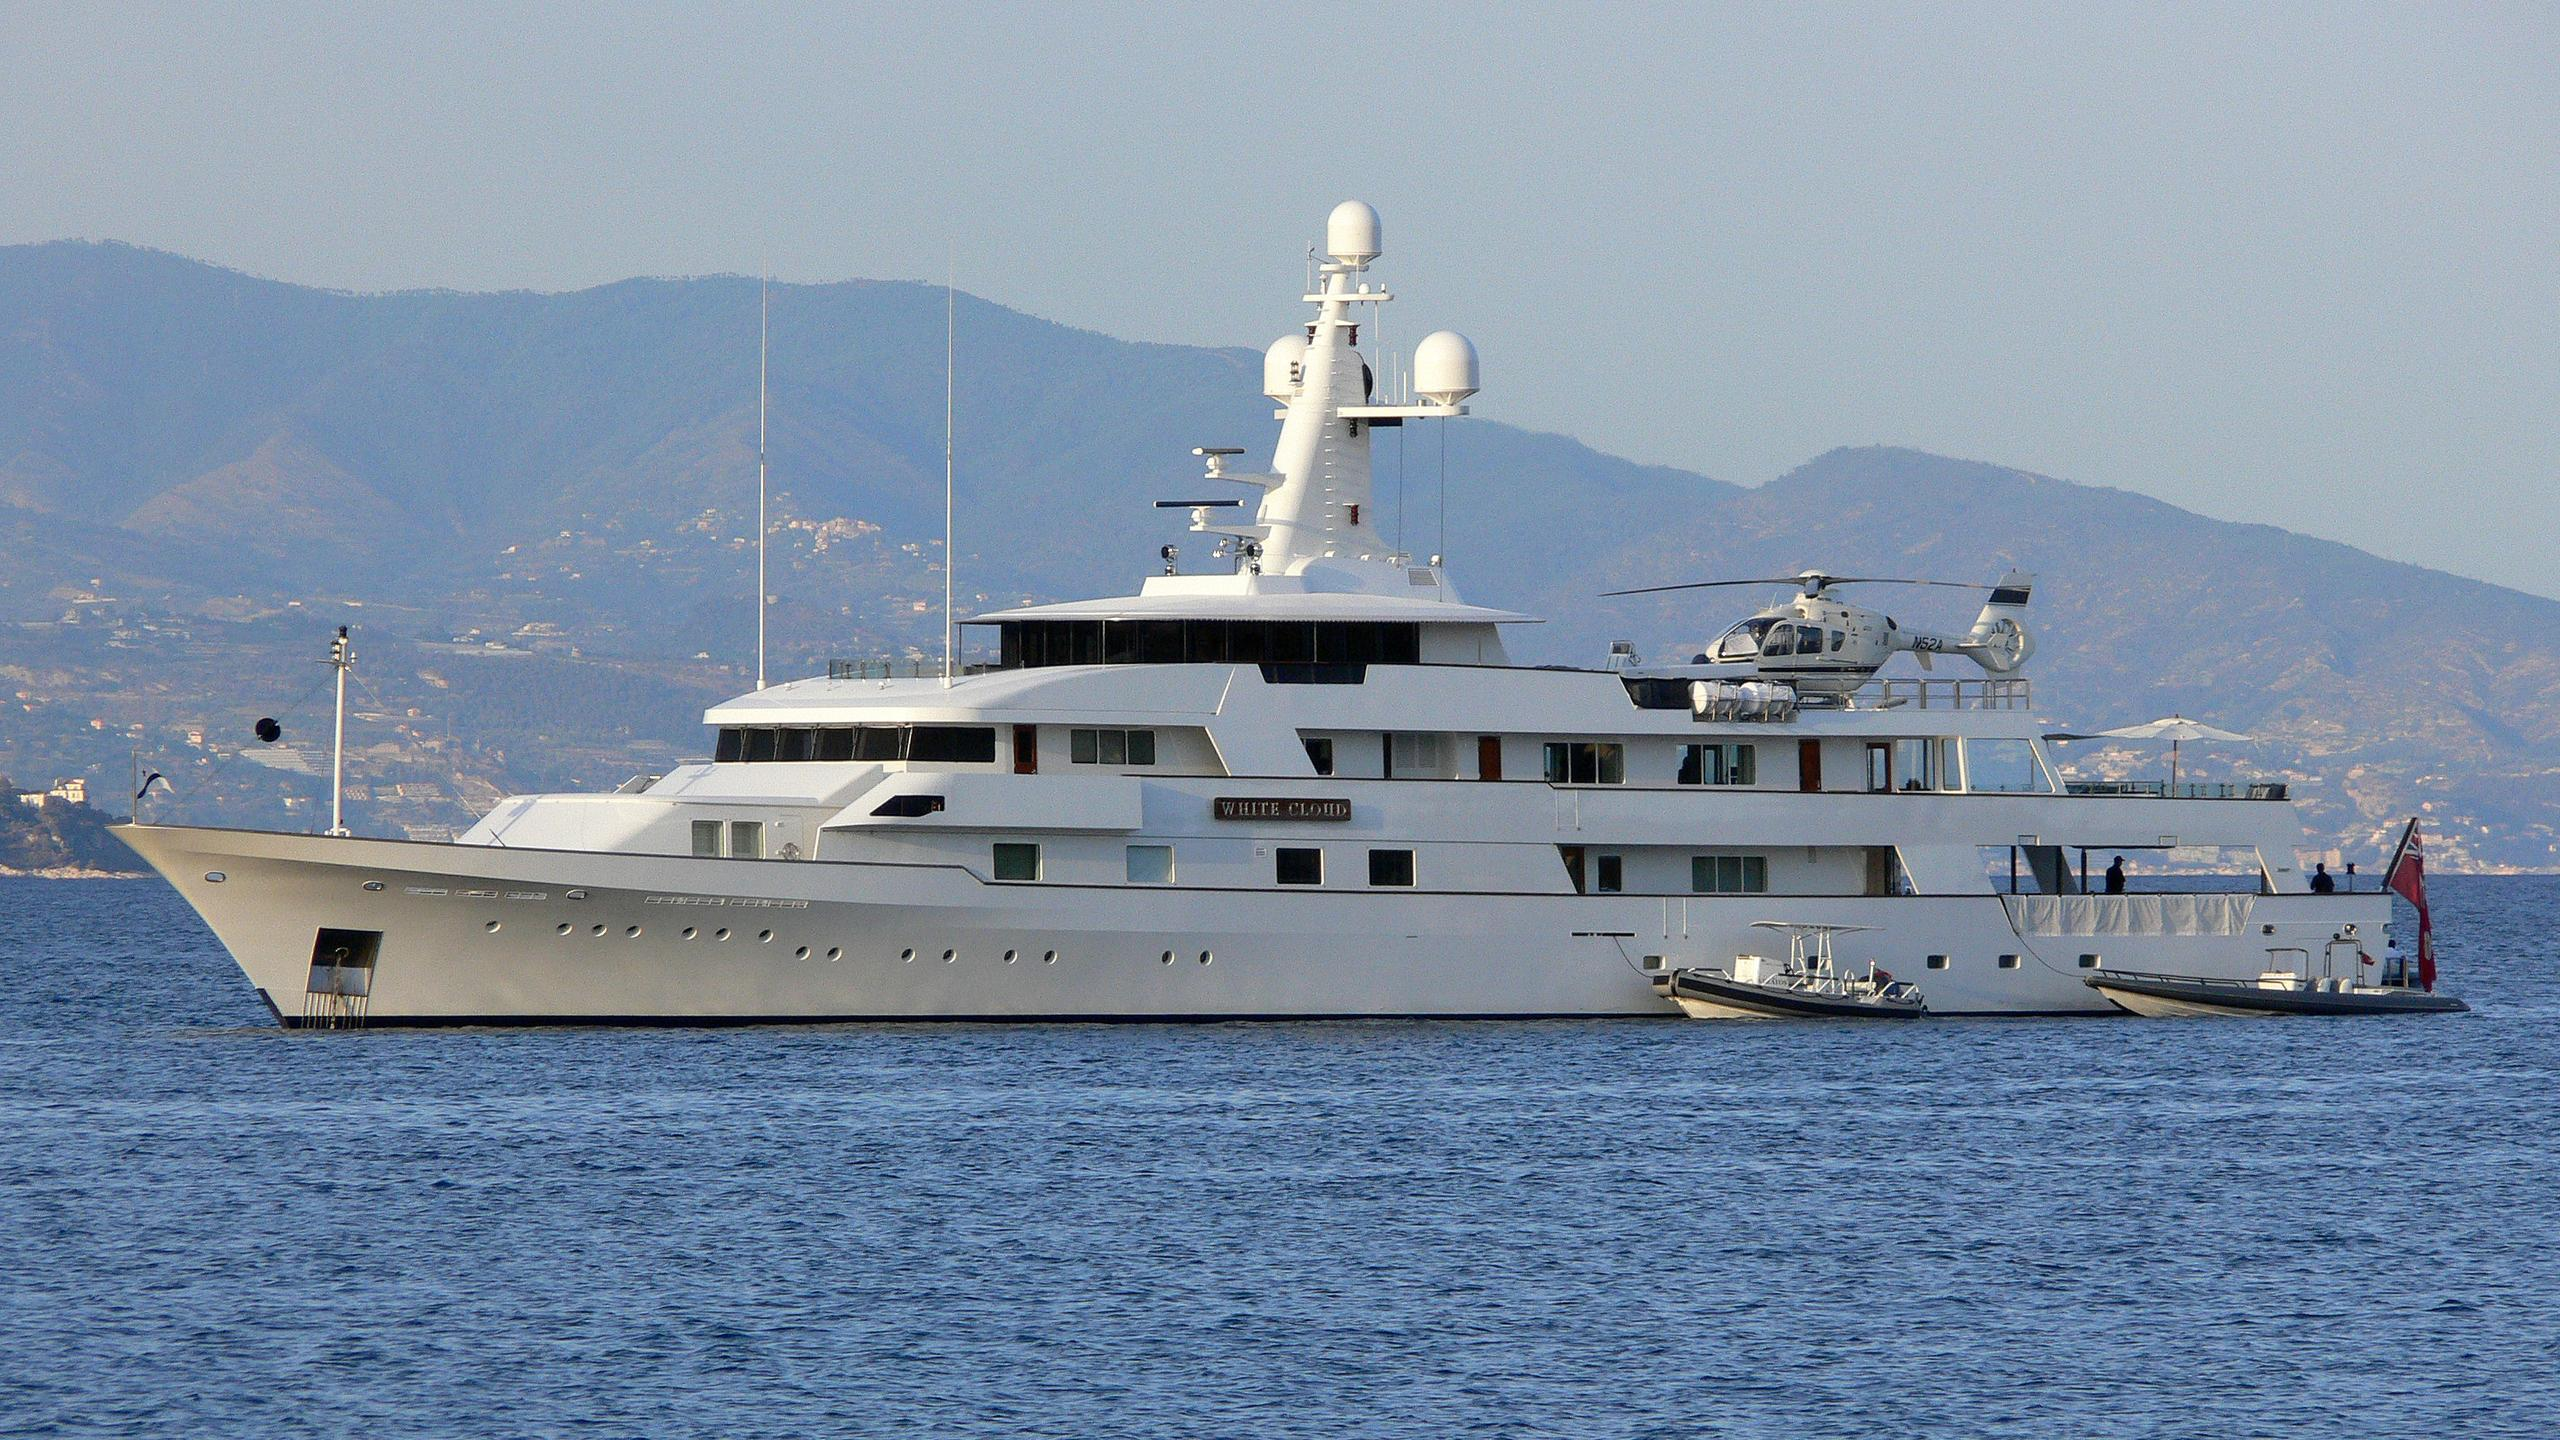 falcon-lair-motor-yacht-feadship-1983-67m-profile-before-refit